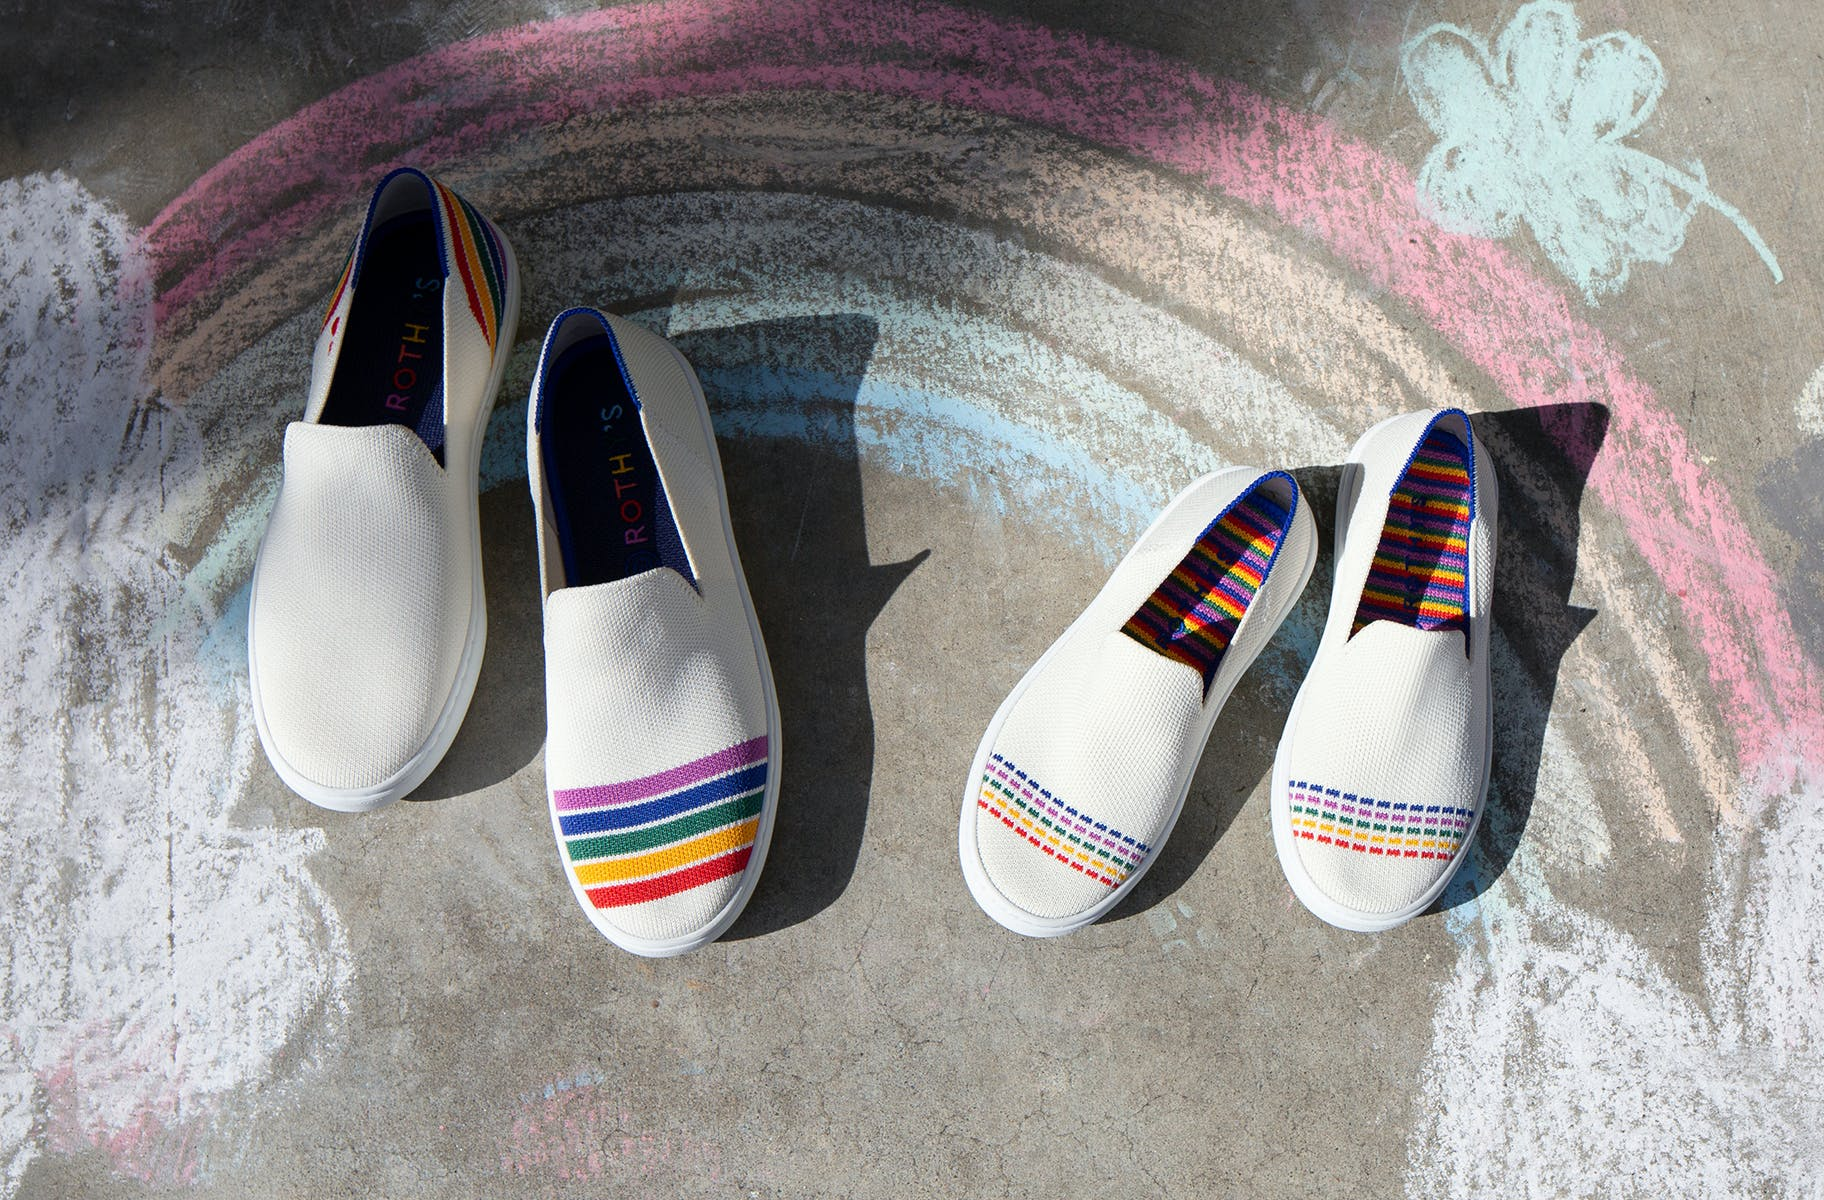 An adult's sneaker in white with multicolored stripes, and The Kids Sneaker in White Rainbow, shown on a sidewalk.